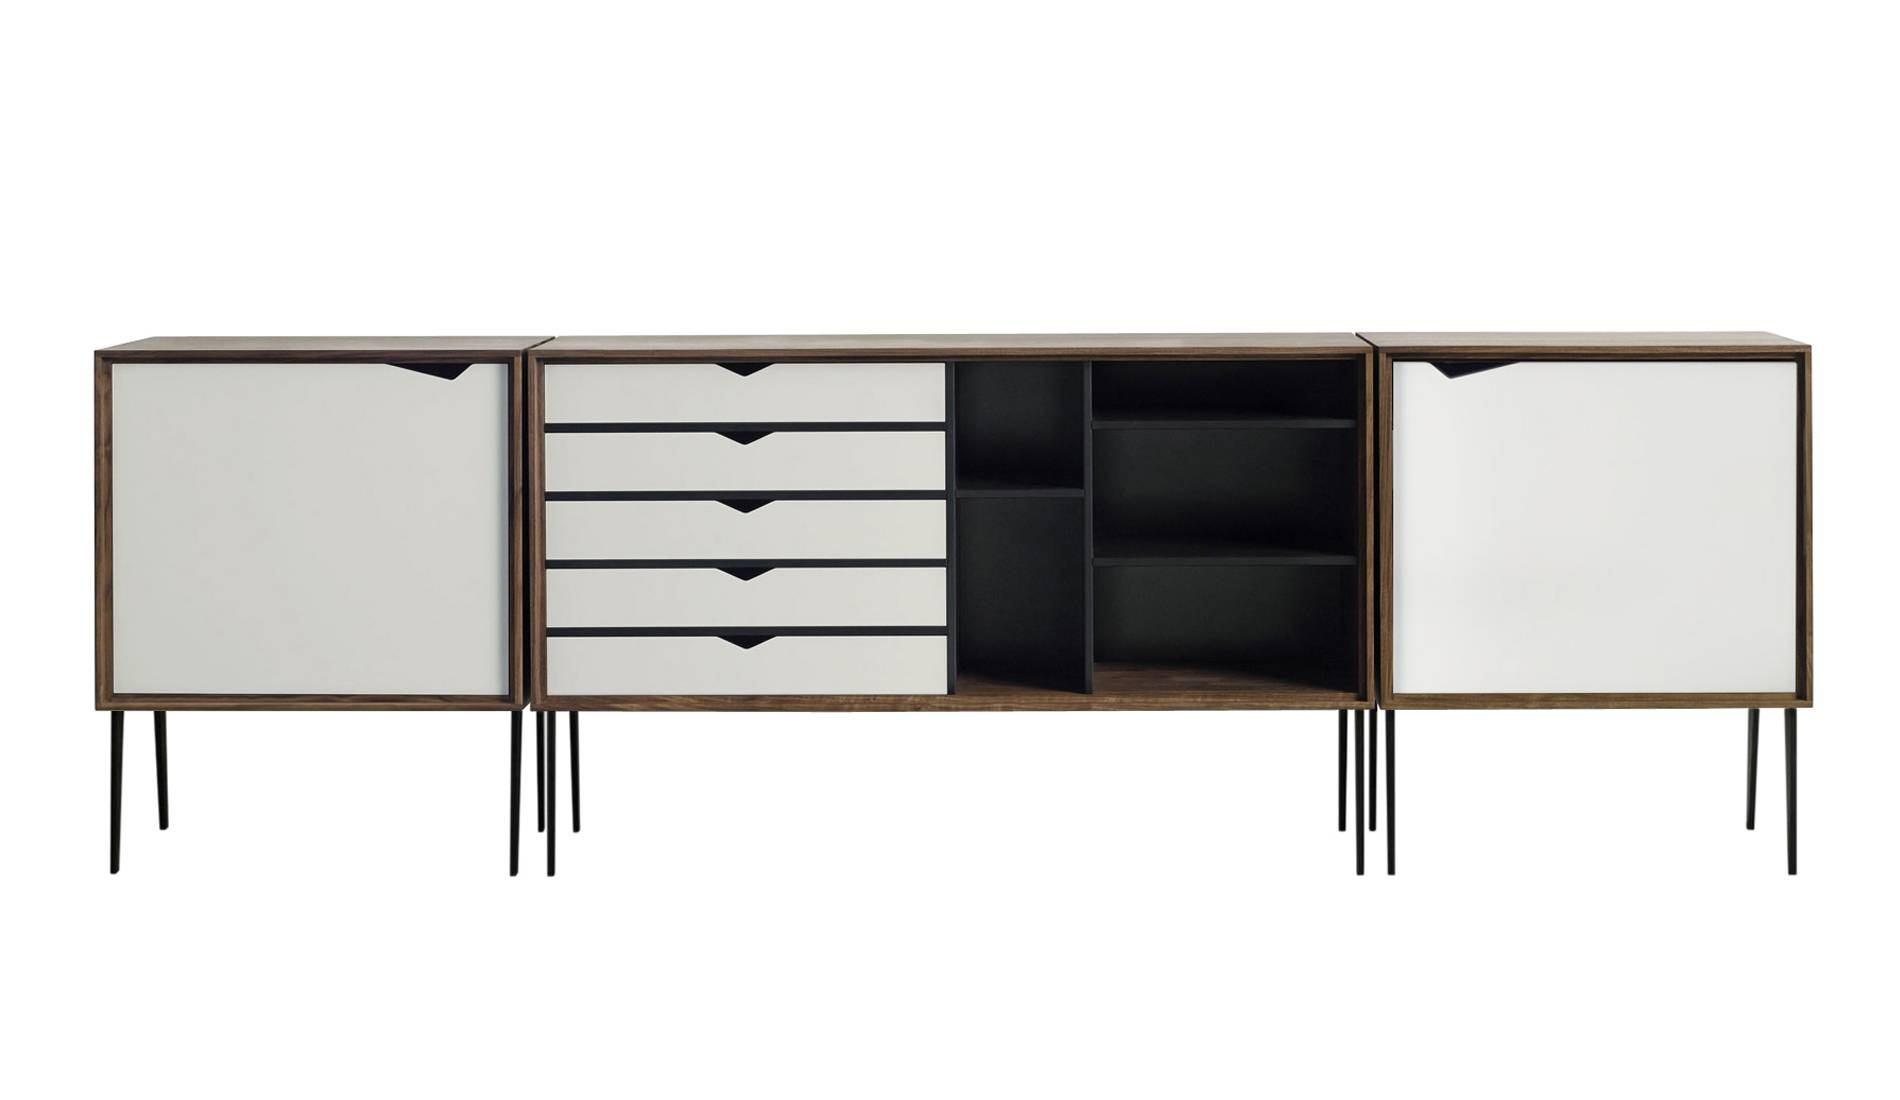 Andersen S2 Walnut / White Sideboard | Dopo Domani With Regard To Black And Walnut Sideboard (#5 of 20)